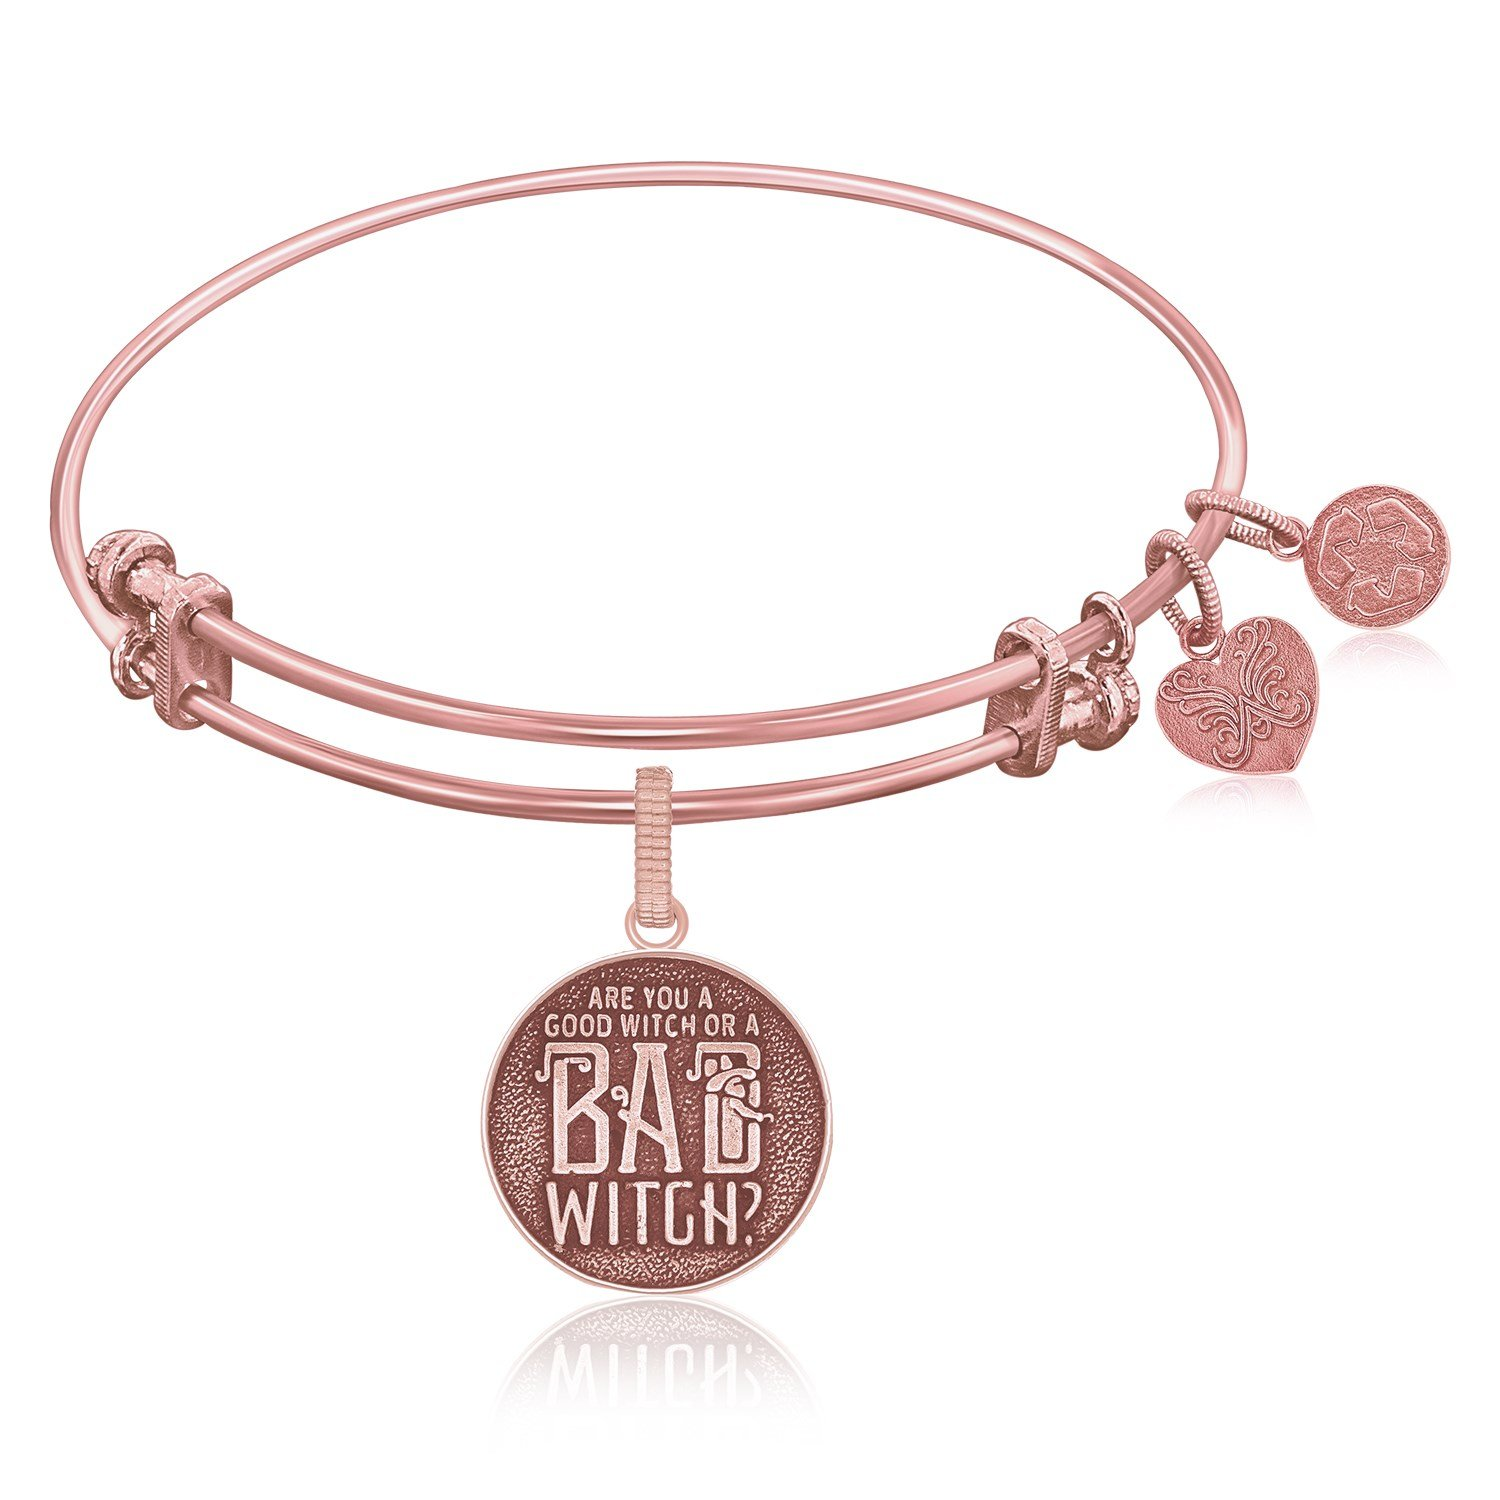 Expandable Bangle in Pink Tone Brass with Good Witch Bad